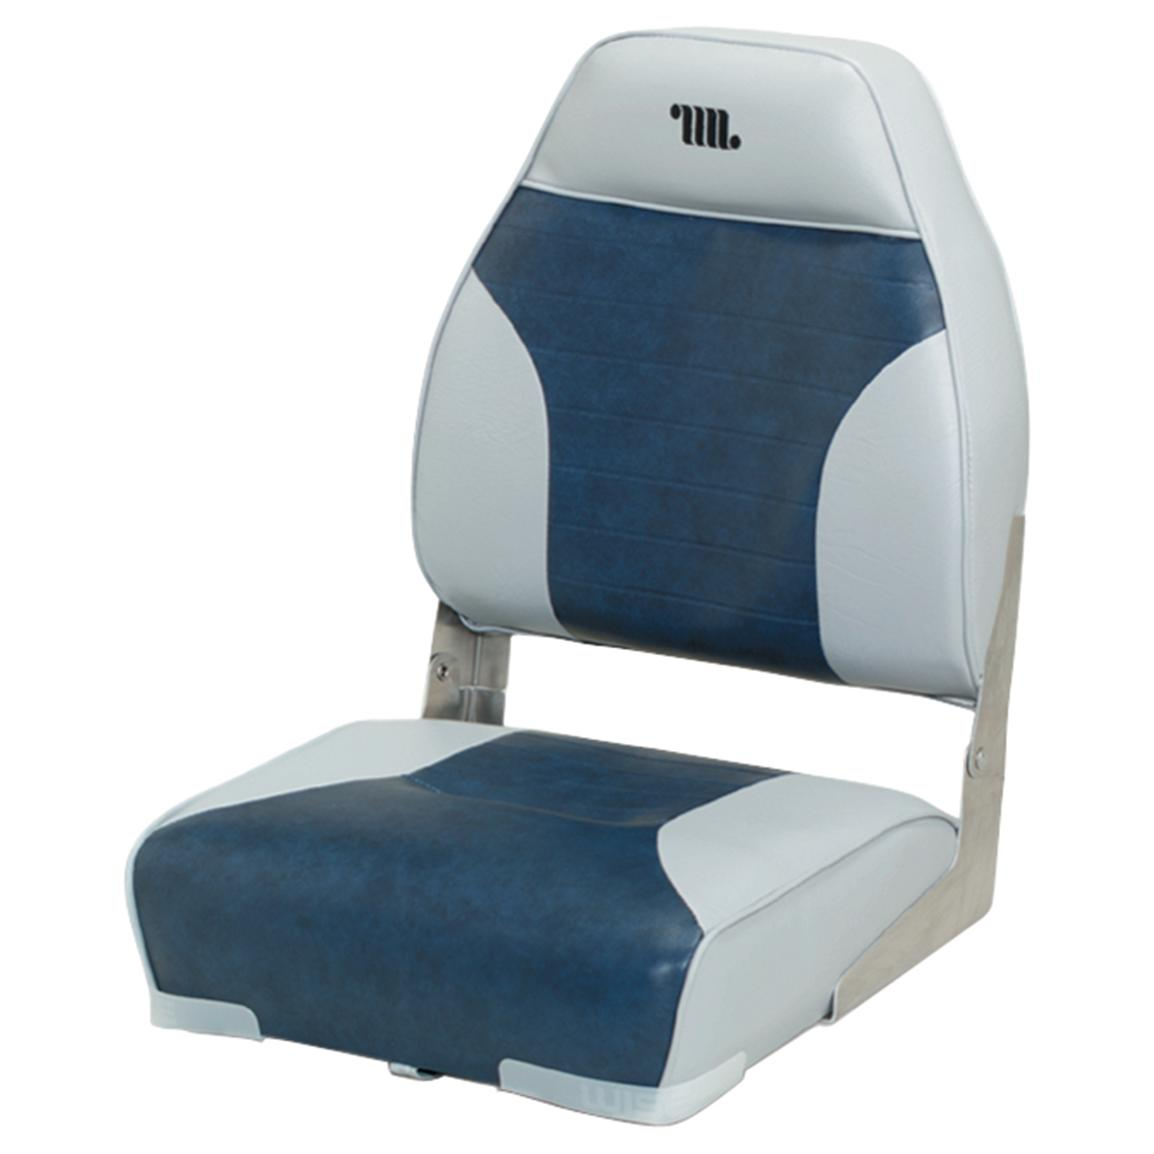 Wise Premium Folding Fishing Boat Seat, Grey / Navy